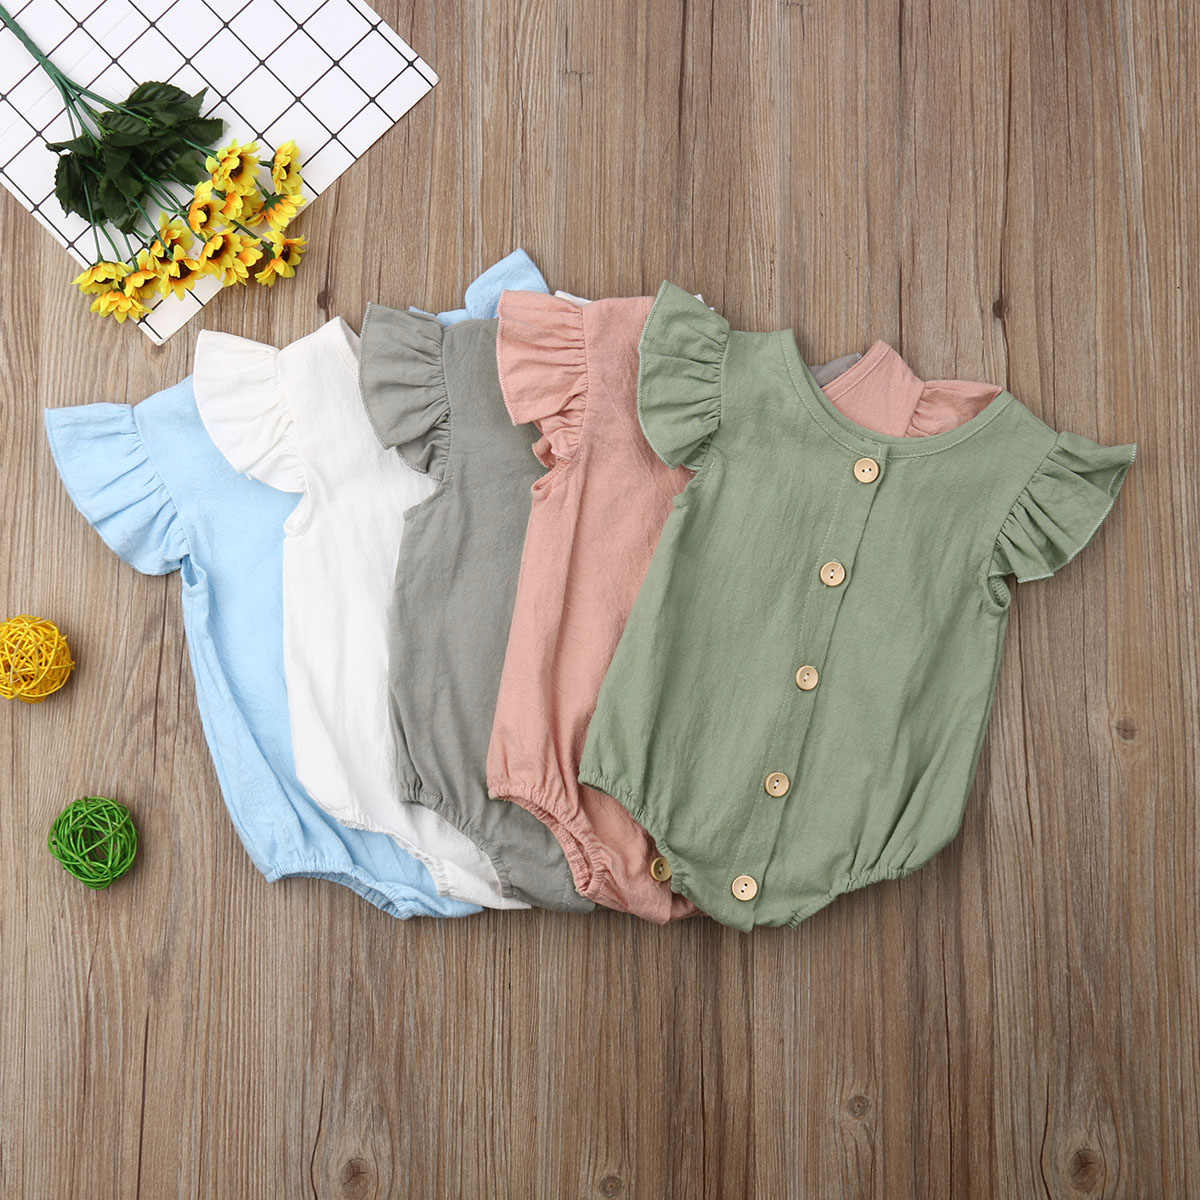 2019 Baby Summer Clothing Infants Baby Girls Boys Bodysuits Pure Color Ruffles Fly Short Sleeve Jumpsuit Clothes Tops Playsuits